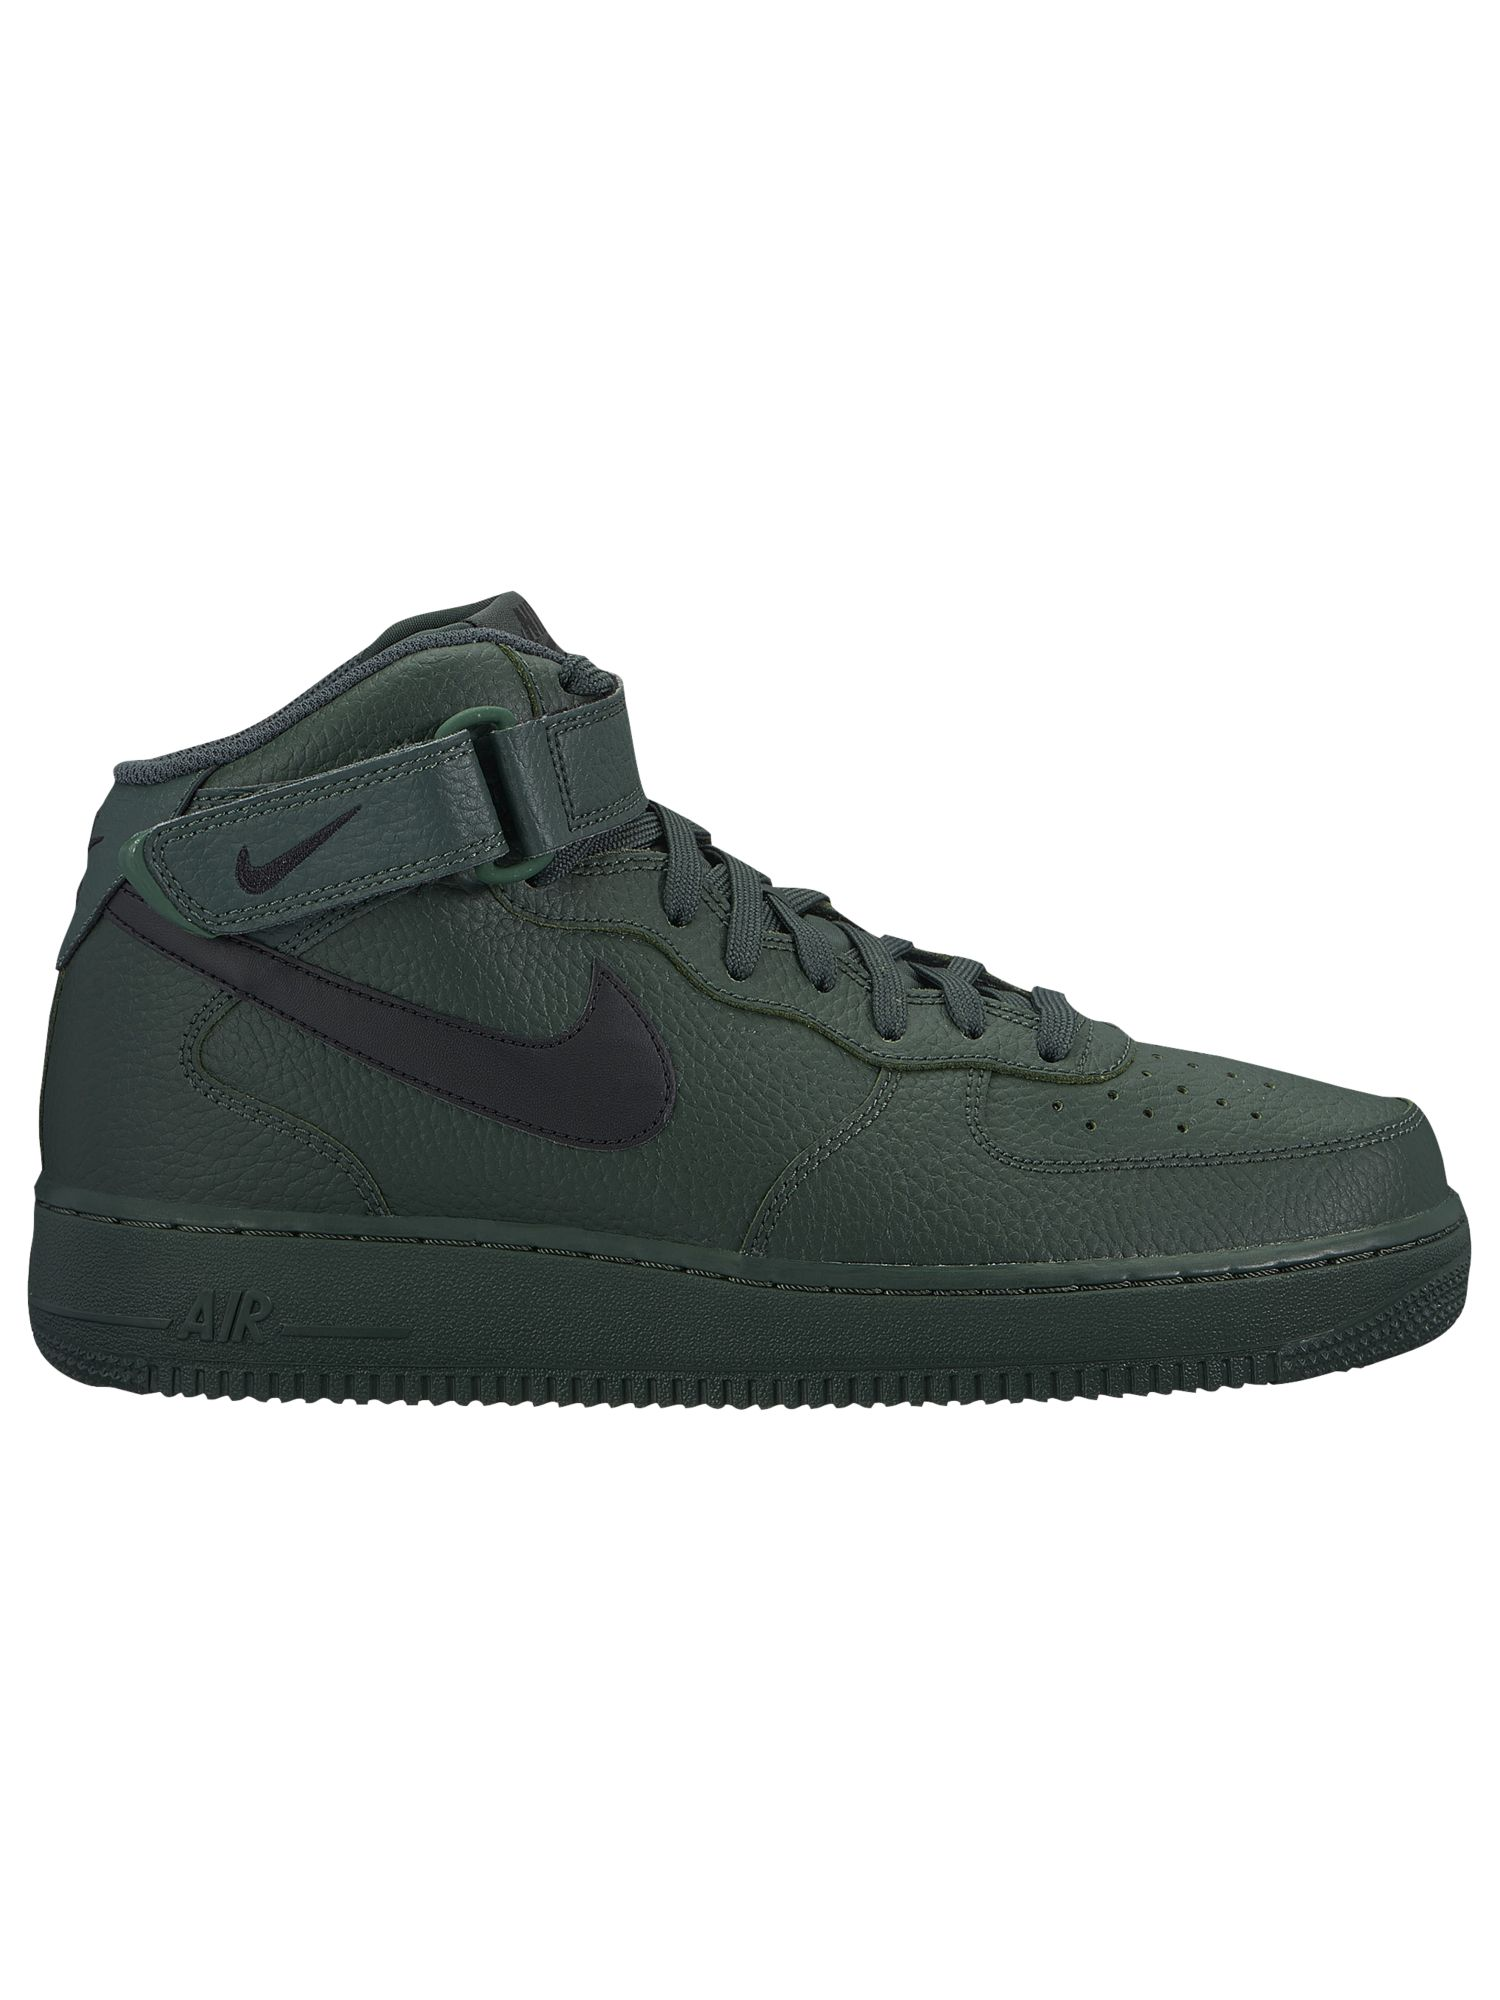 0d4d3af768120 ... coupon code for nike air force 1 mid mens basketball shoes grove green  black grove green